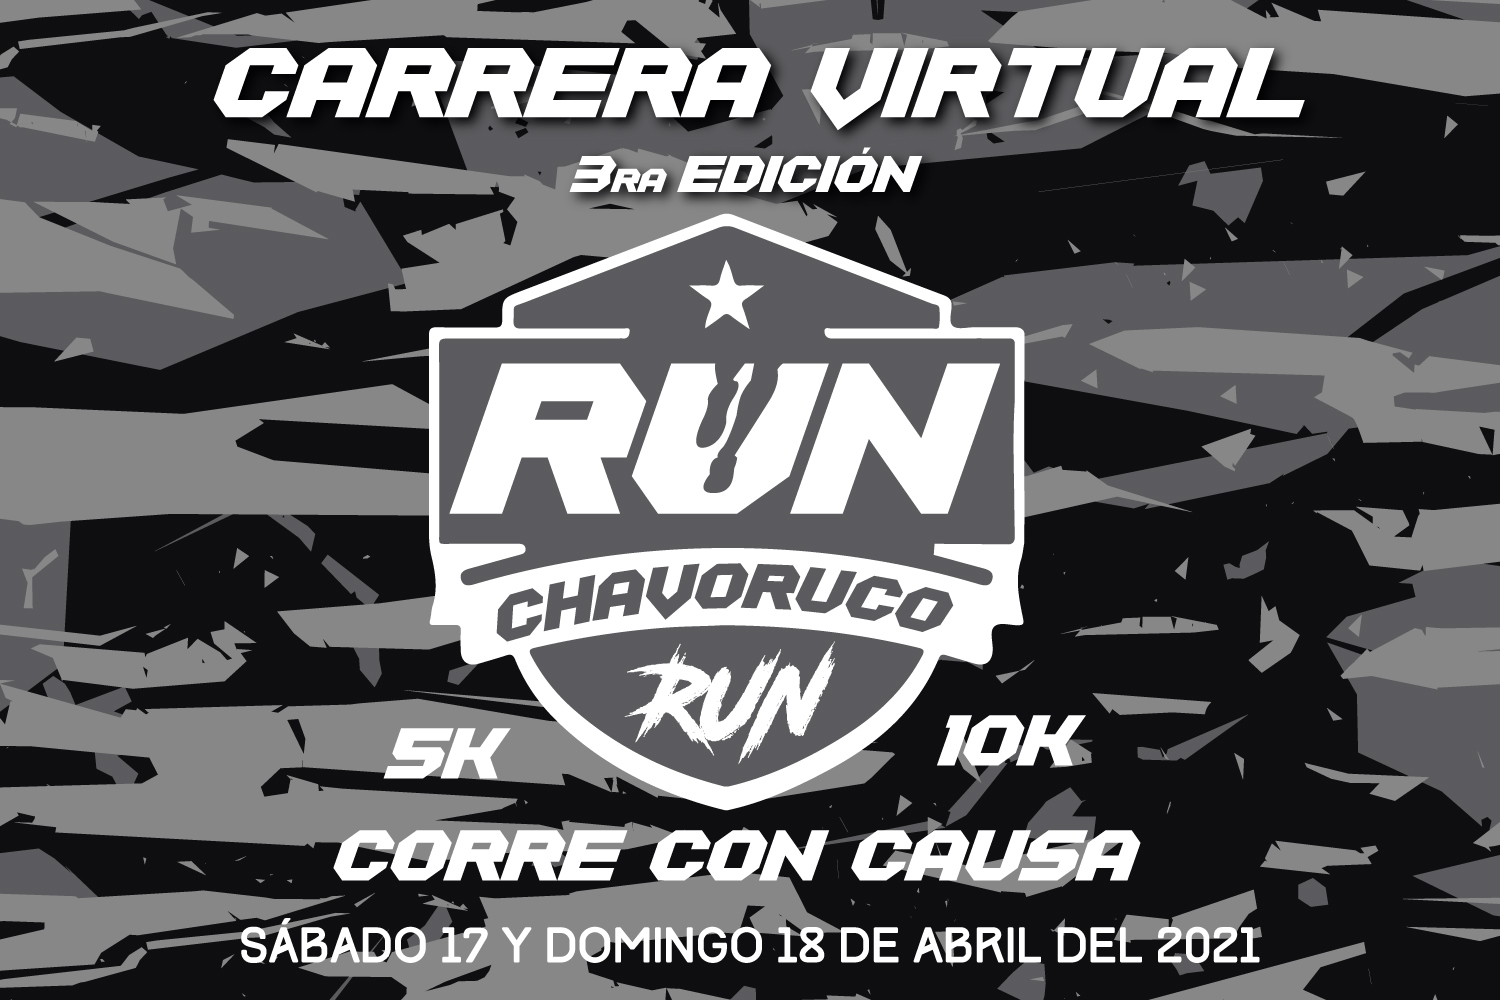 CARRERA VIRTUAL 3RA EDICION RUN CHAVORUCO RUN 5K Y 10K